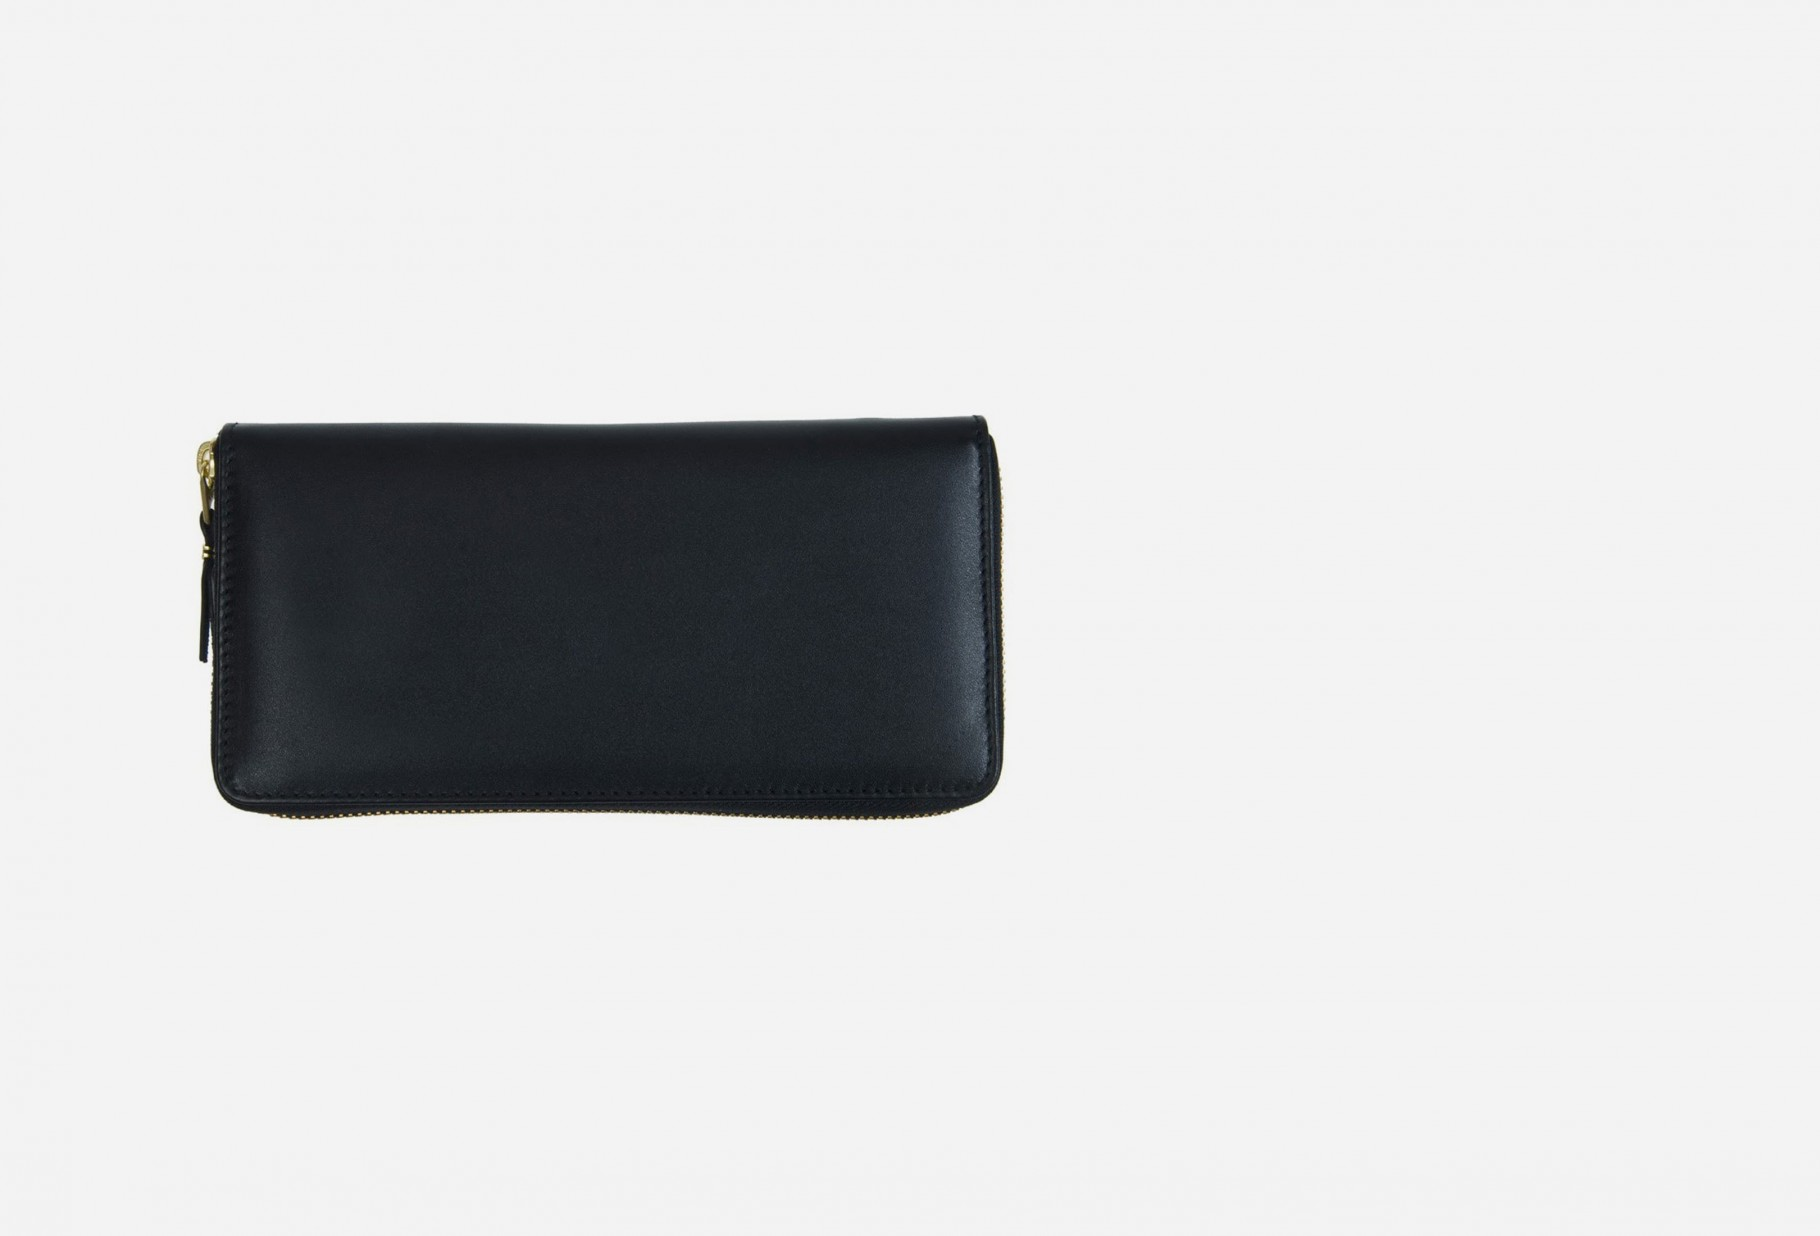 CDG WALLETS FOR WOMAN / Cdg classic leather sa0110 Black